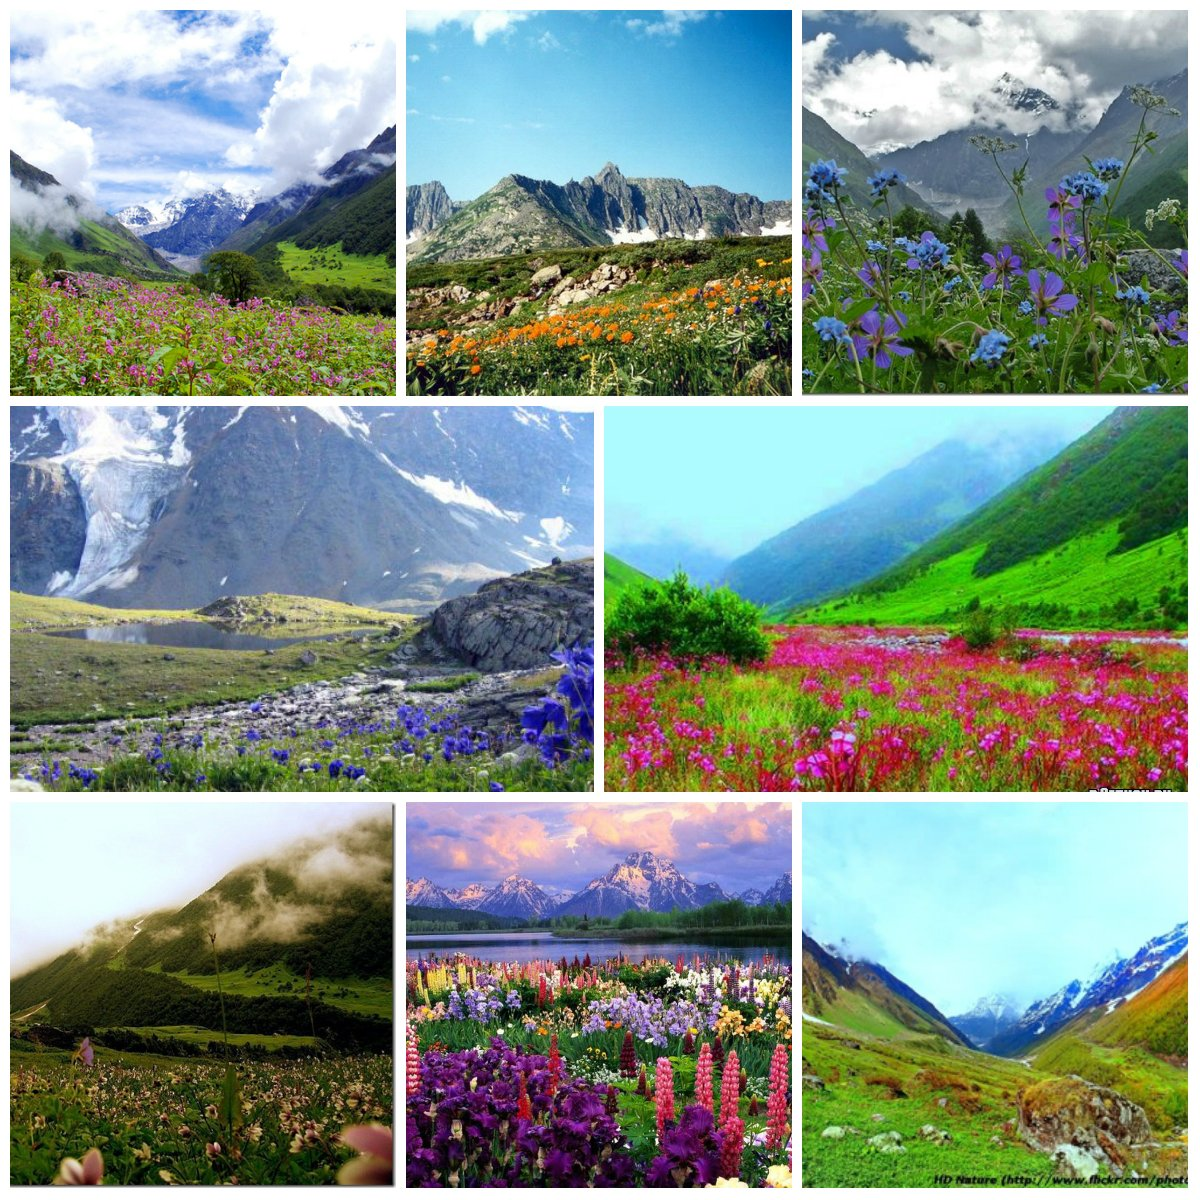 Valley of Flowers a Magnificent Park in India